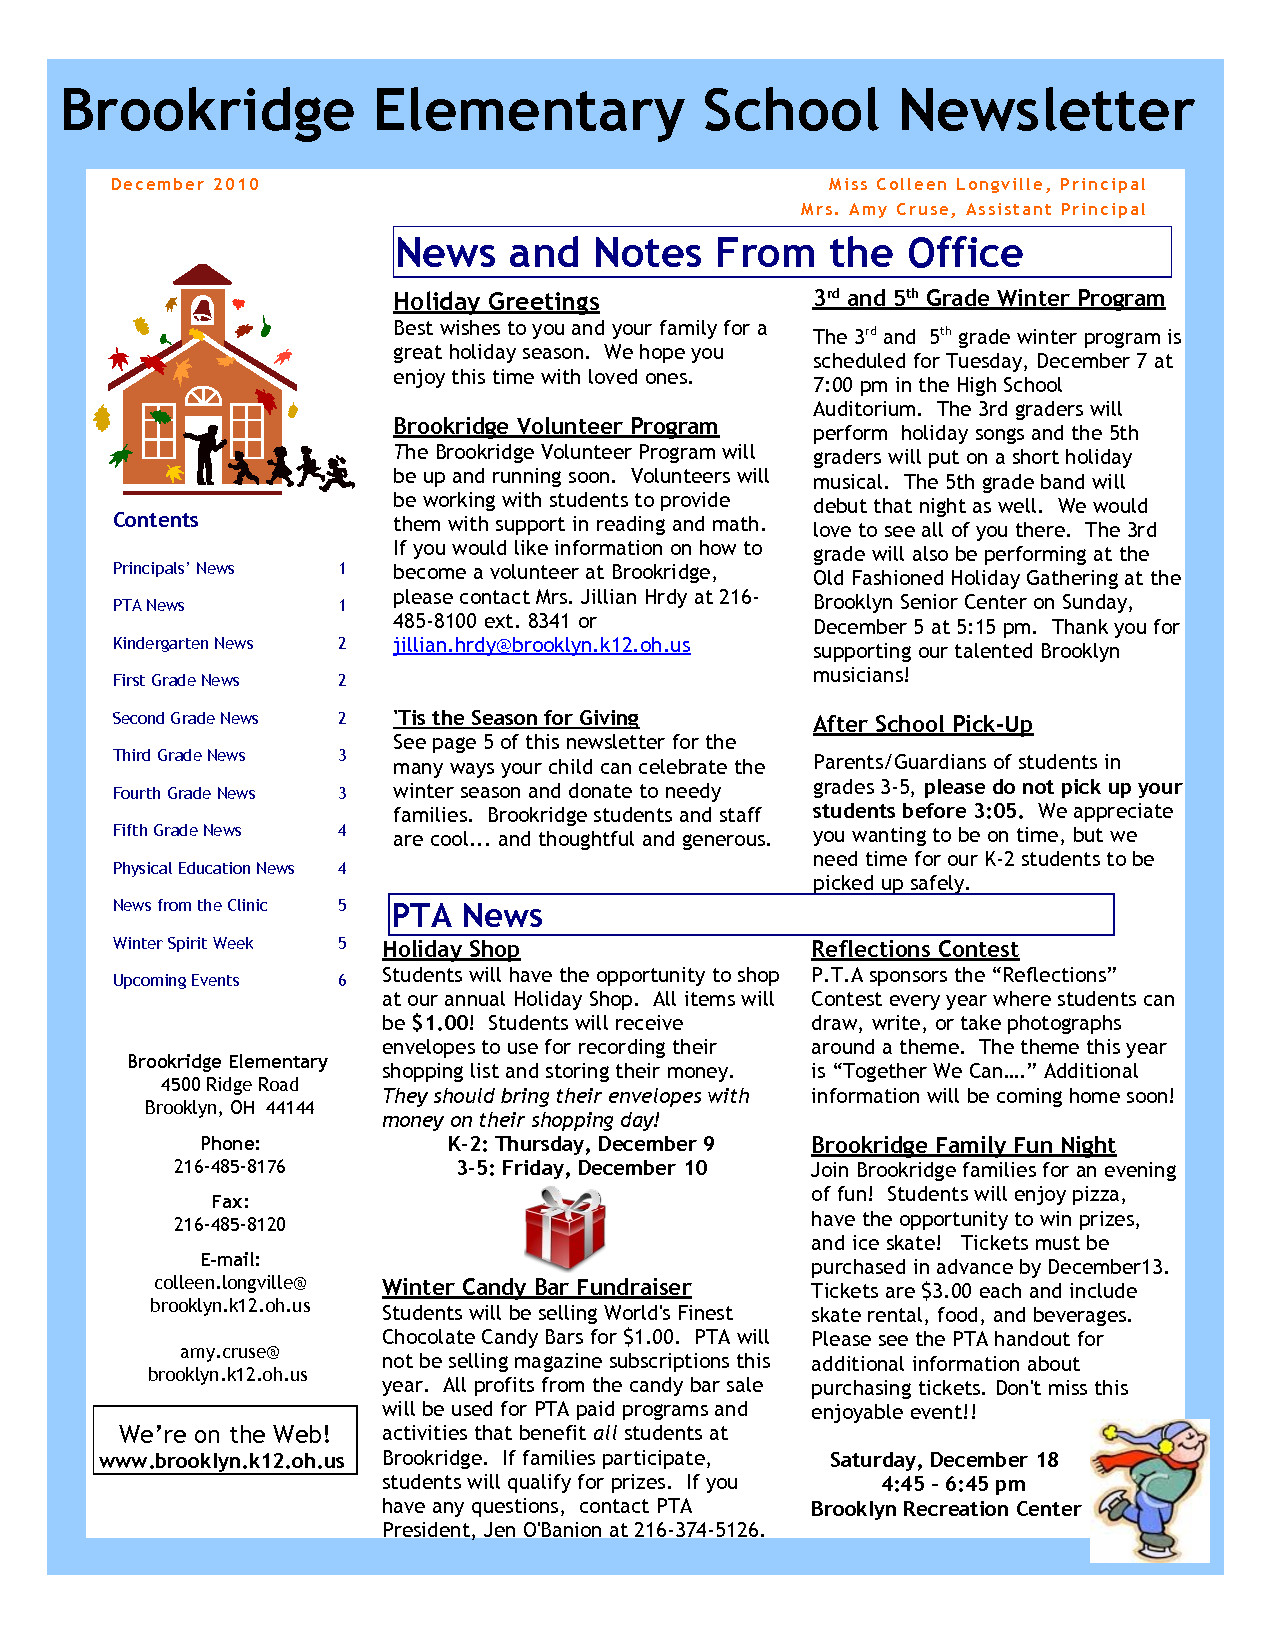 Elementary School Newsletter Template Best S Of Newsletter Examples and Ideas Monthly